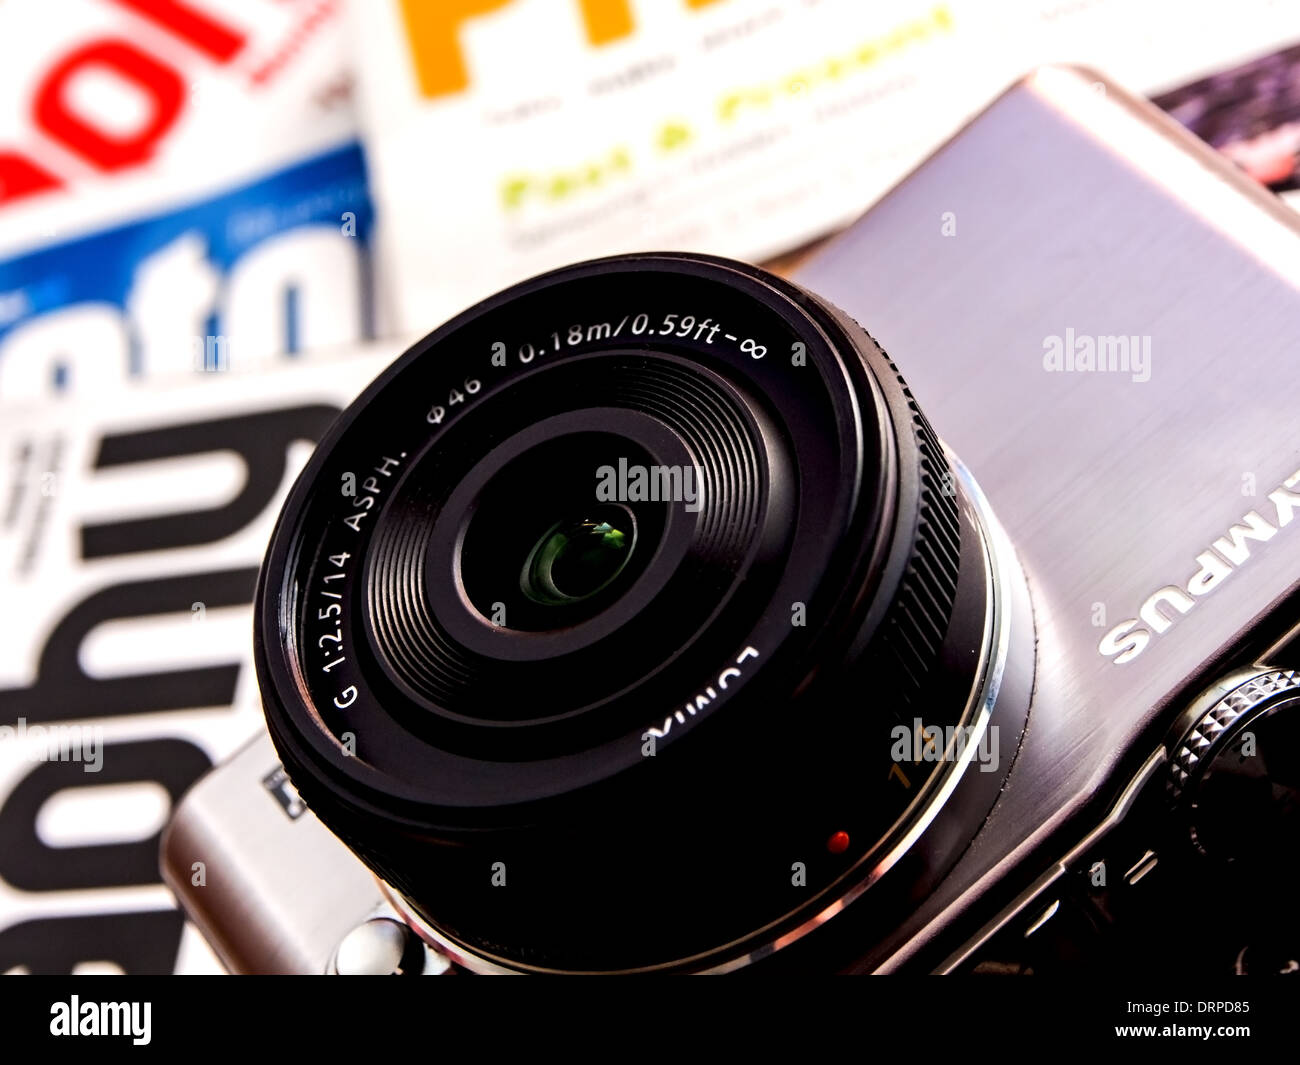 Compact system camera with scattered photography magazines - Stock Image